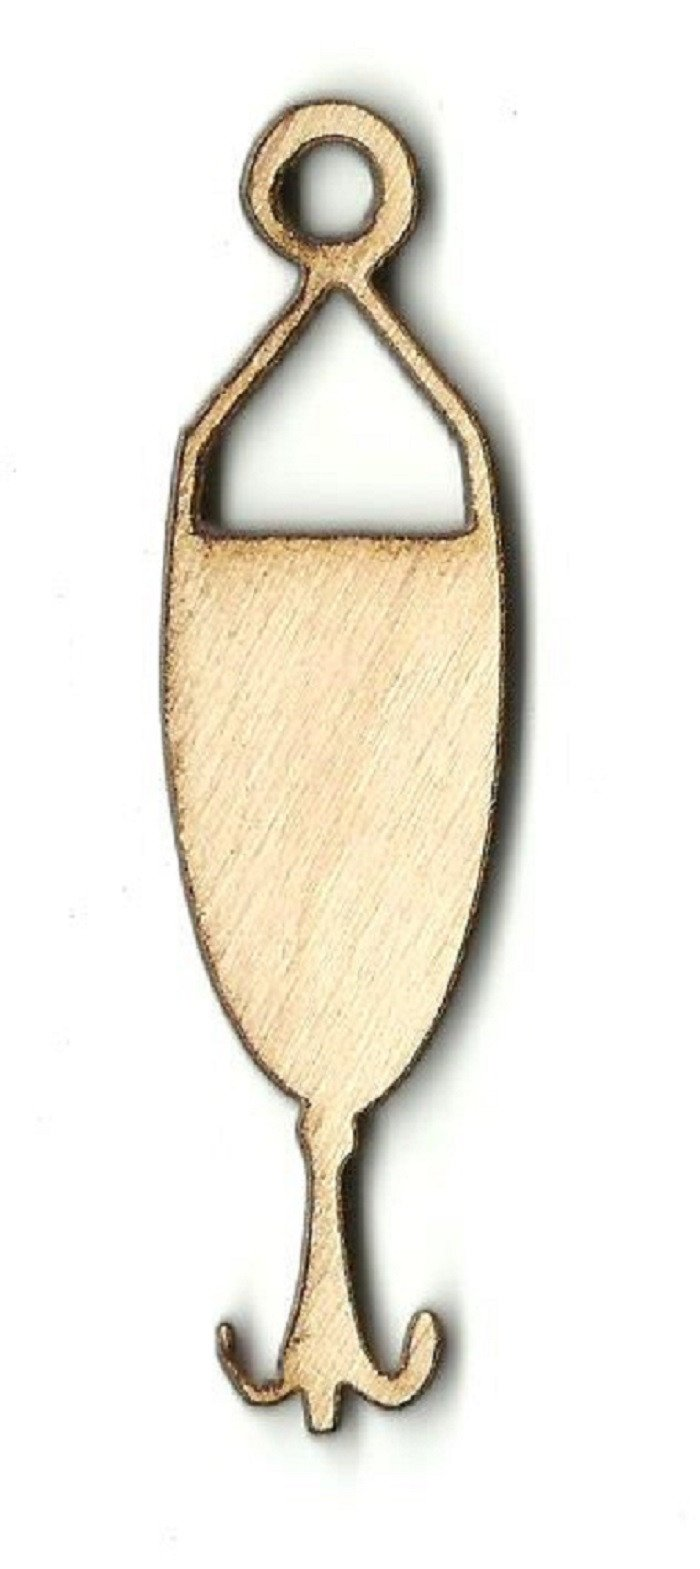 Fishing Lure - Laser Cut Wood Shape Hnt5 Craft Supply